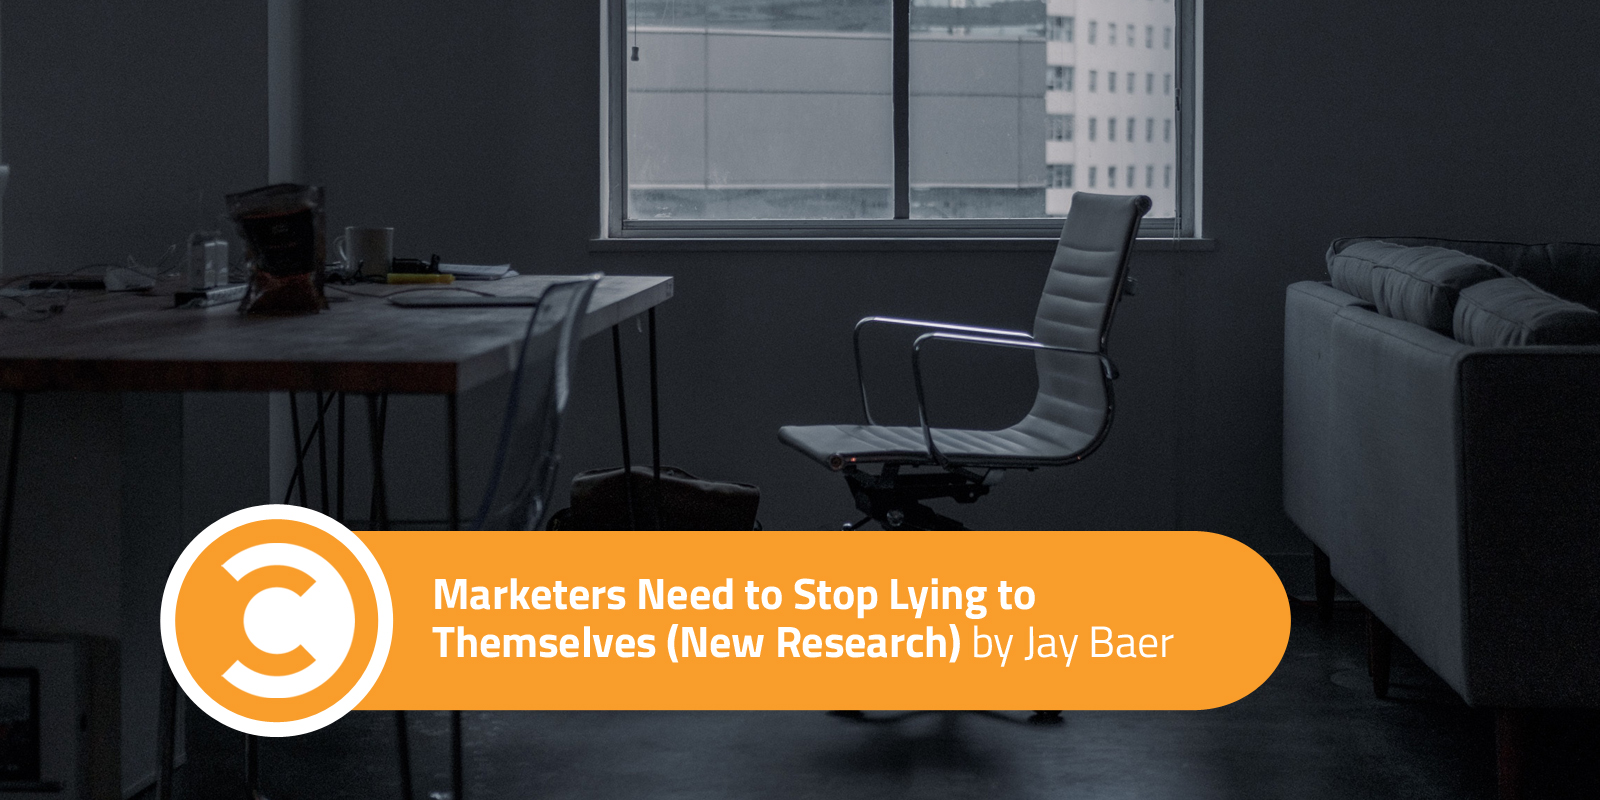 Marketers Need to Stop Lying to Themselves (New Research)